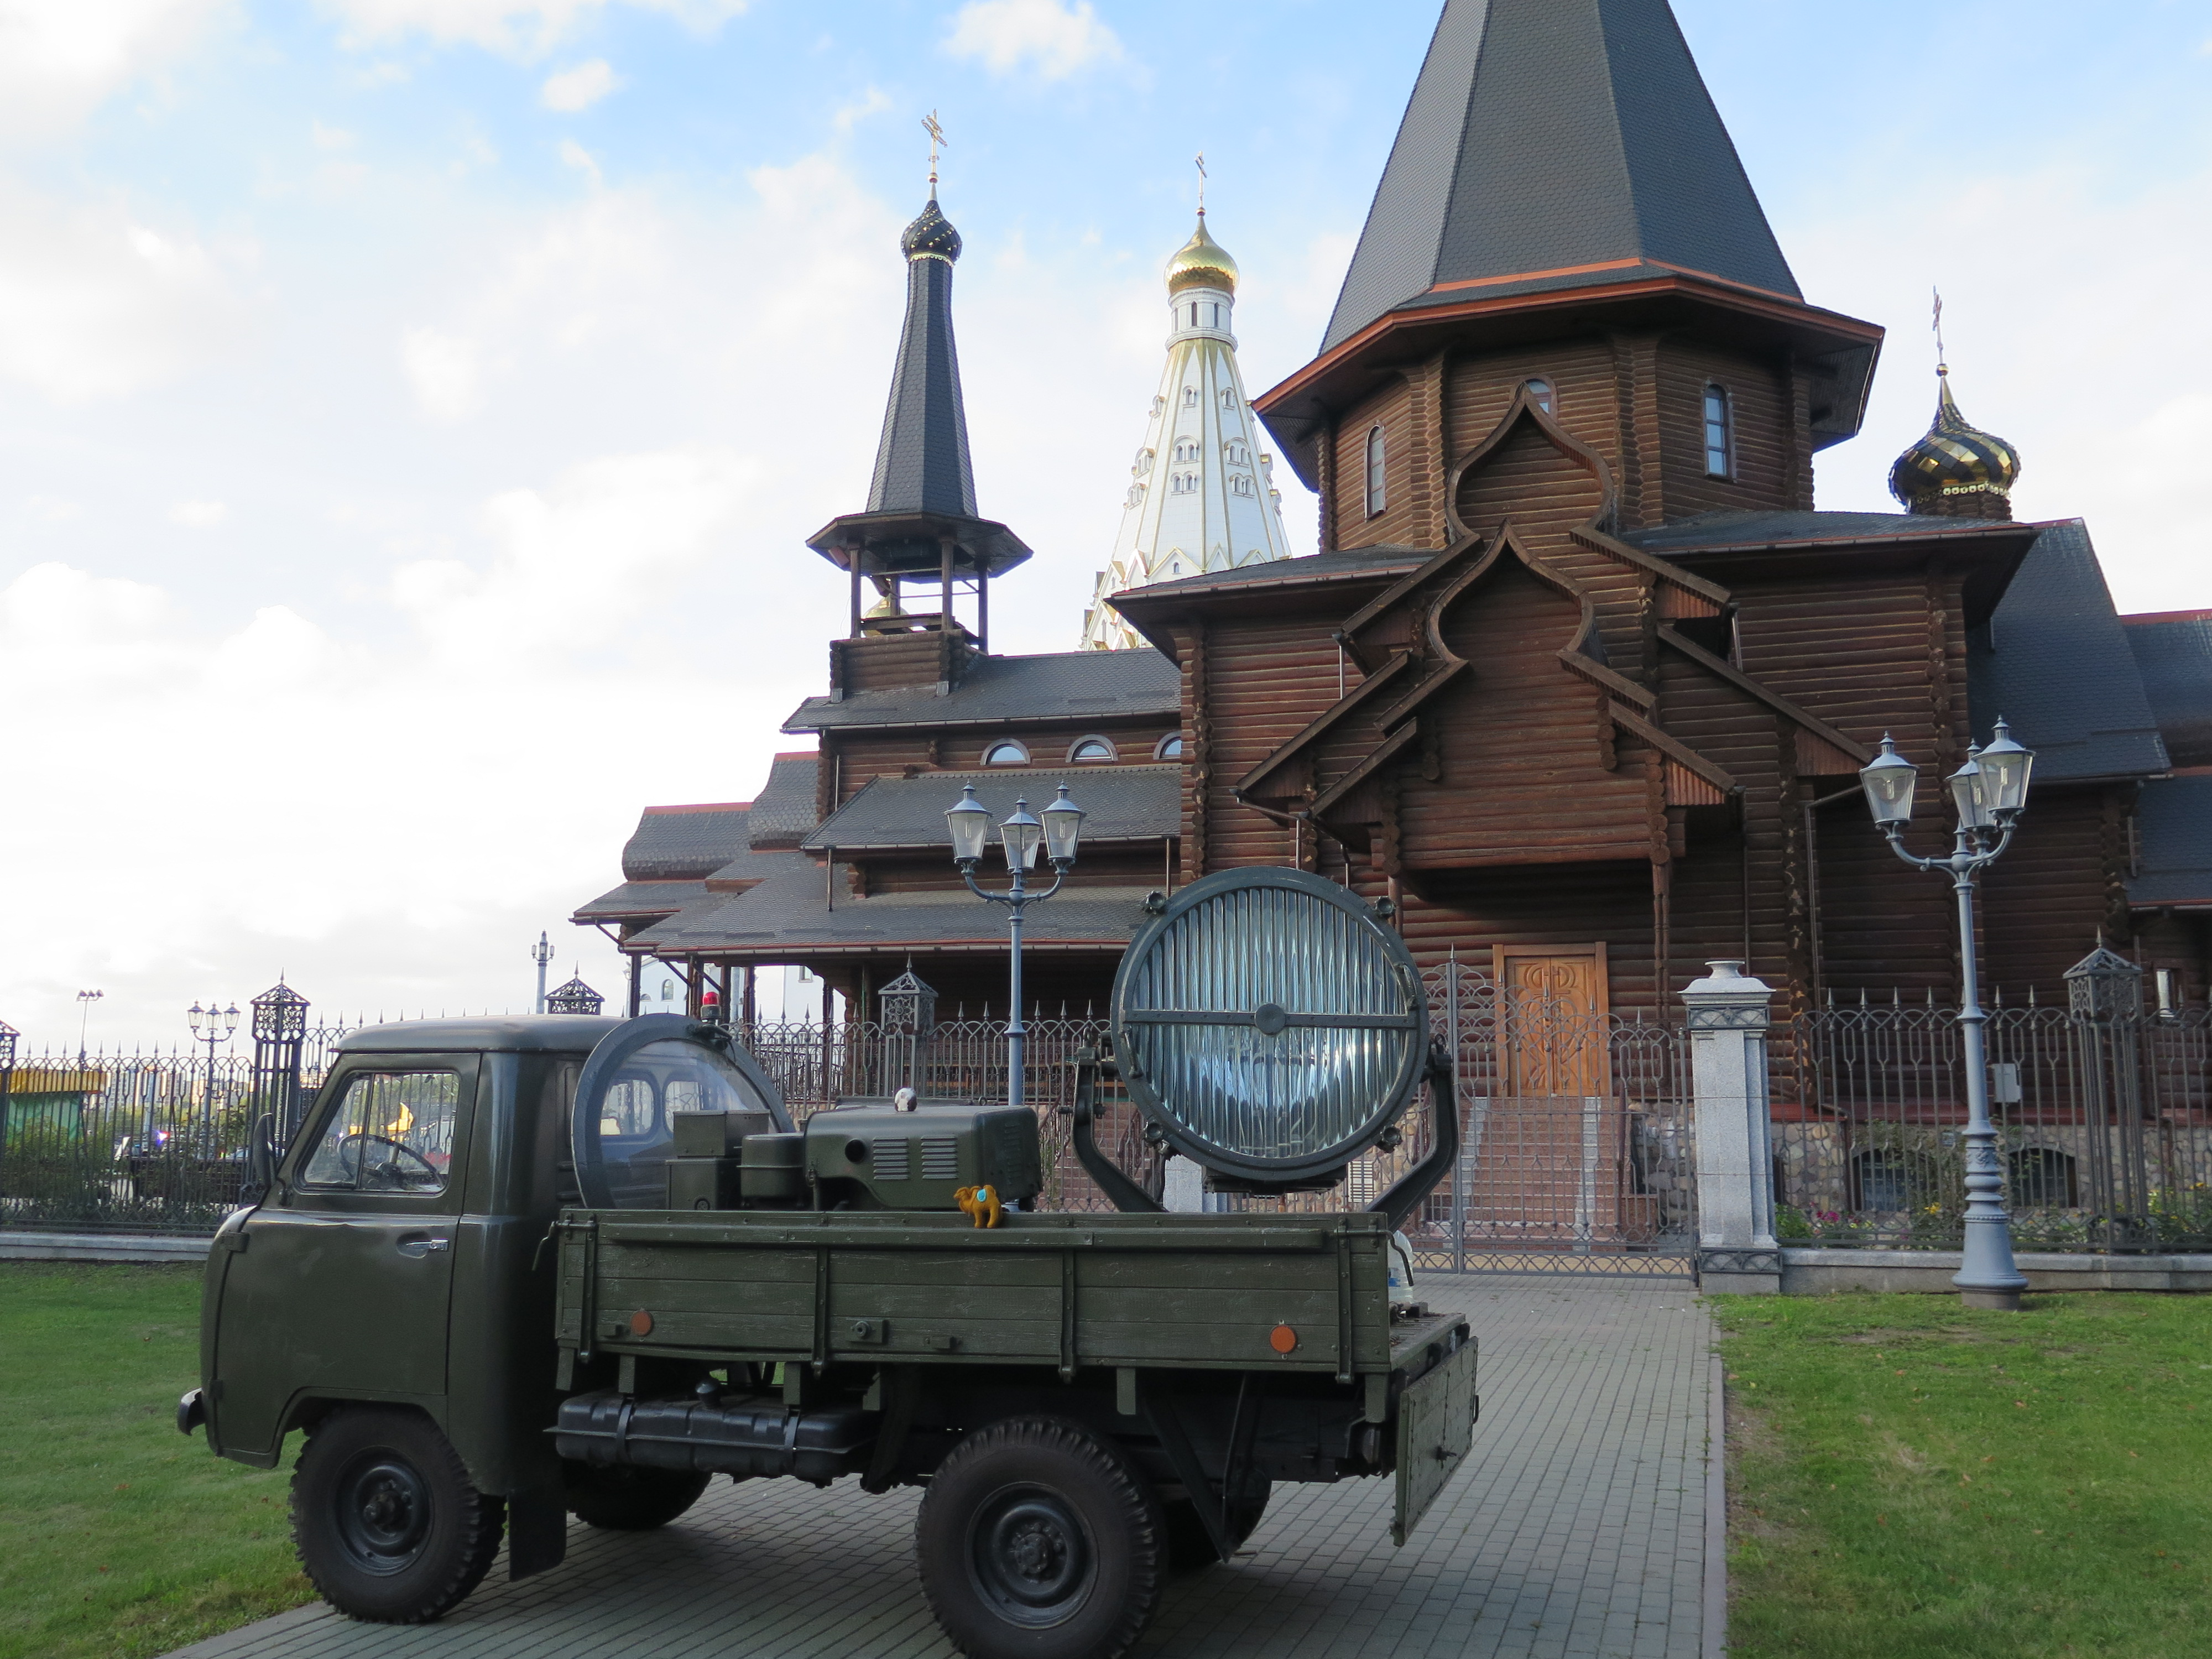 When we walked towards the churches we saw two trucks like this.